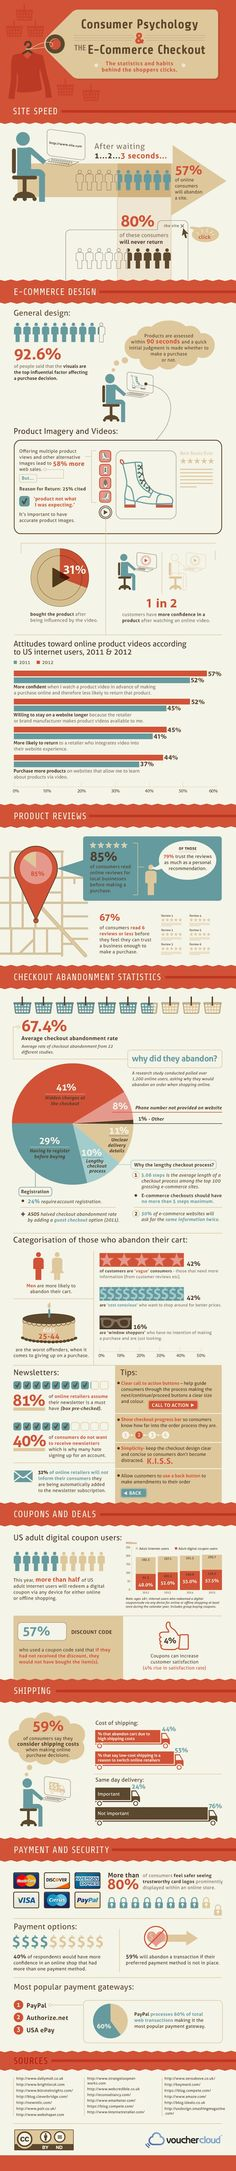 Statistics behind the Checkout: Why people (don't) buy - State of Digital